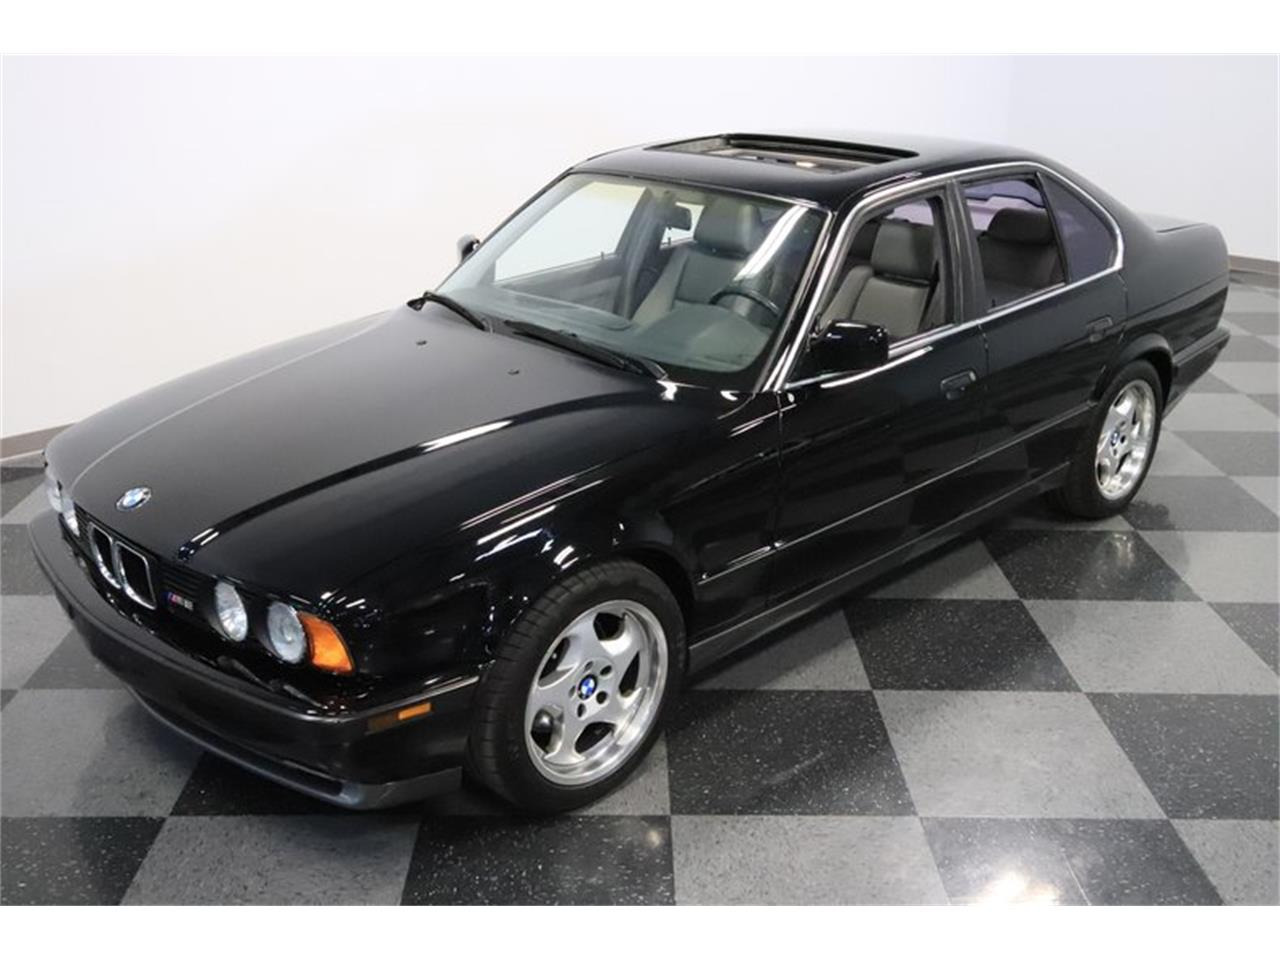 Large Picture of '91 BMW M5 located in Mesa Arizona - $31,995.00 - PUPZ